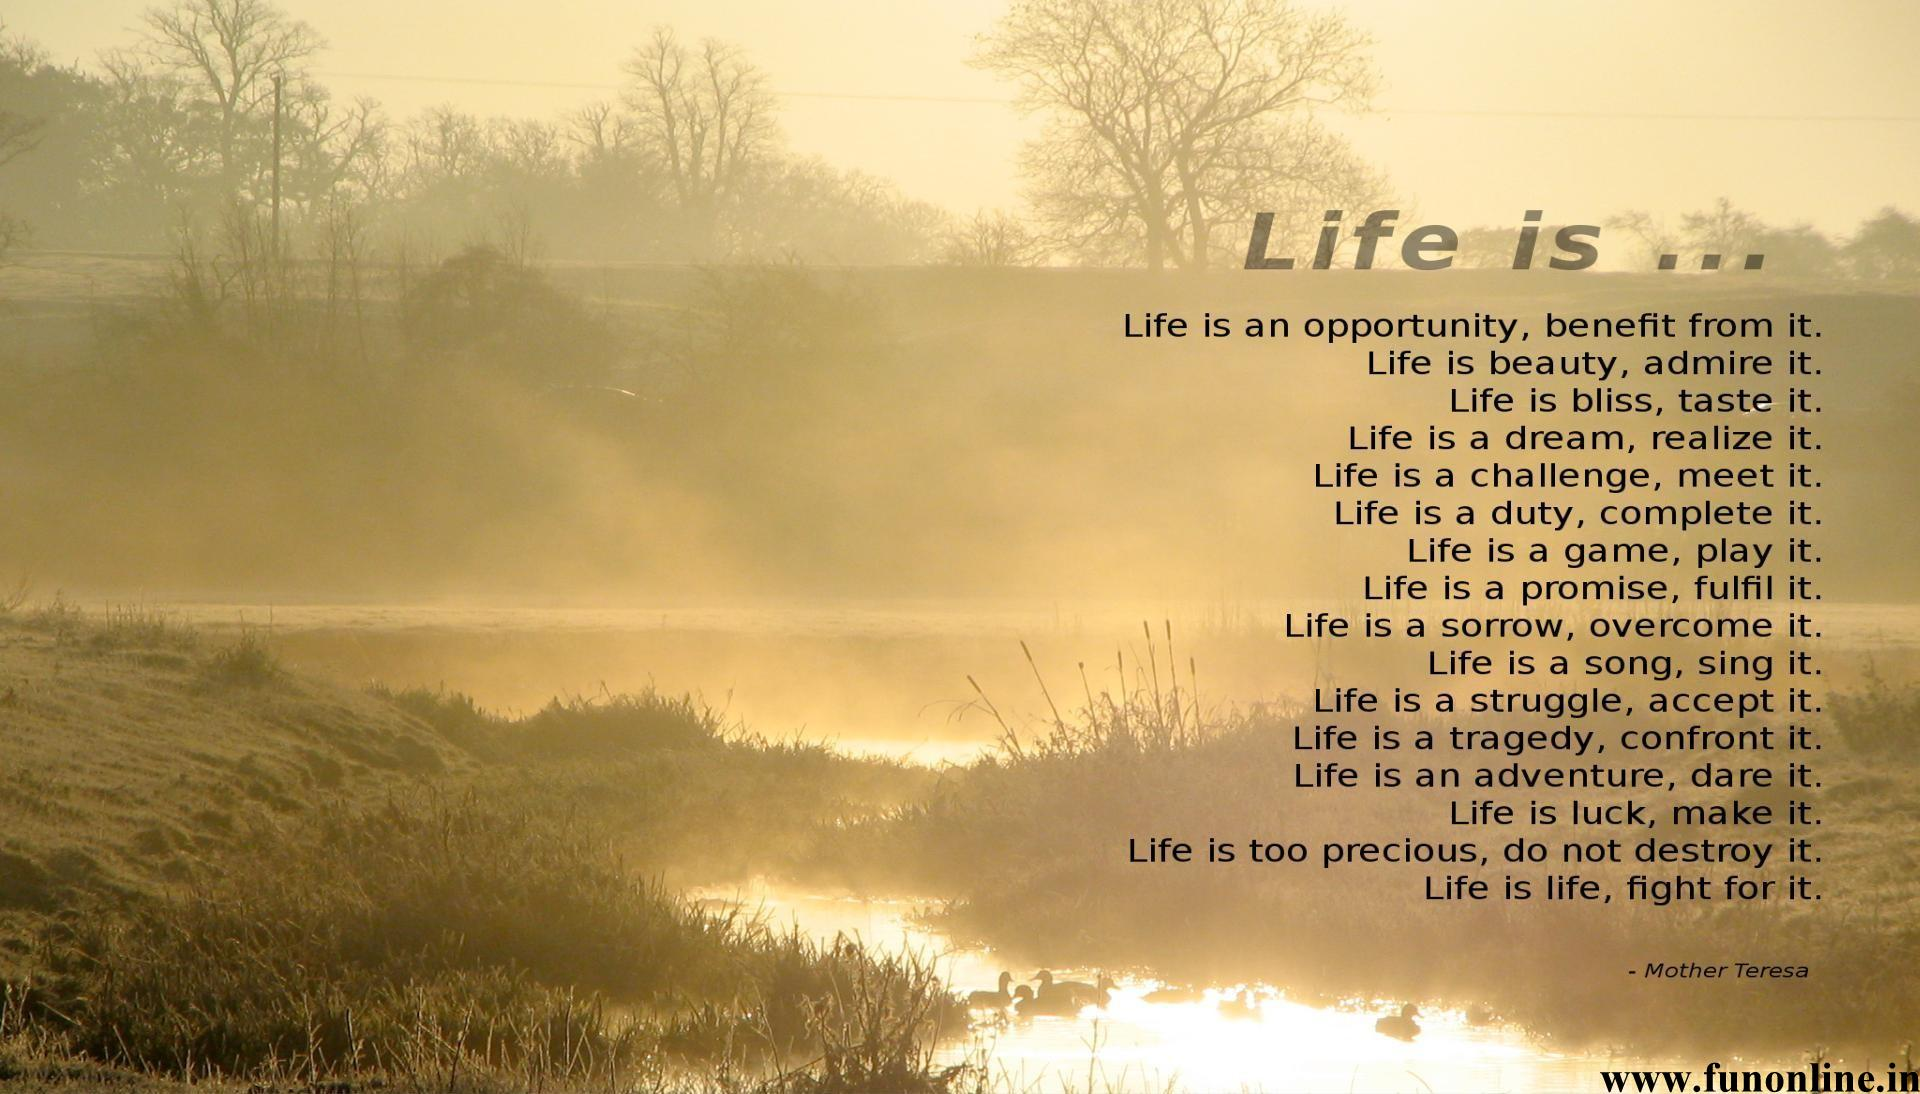 Inspirational Life Quotes And Sayings Inspirational Life Poems